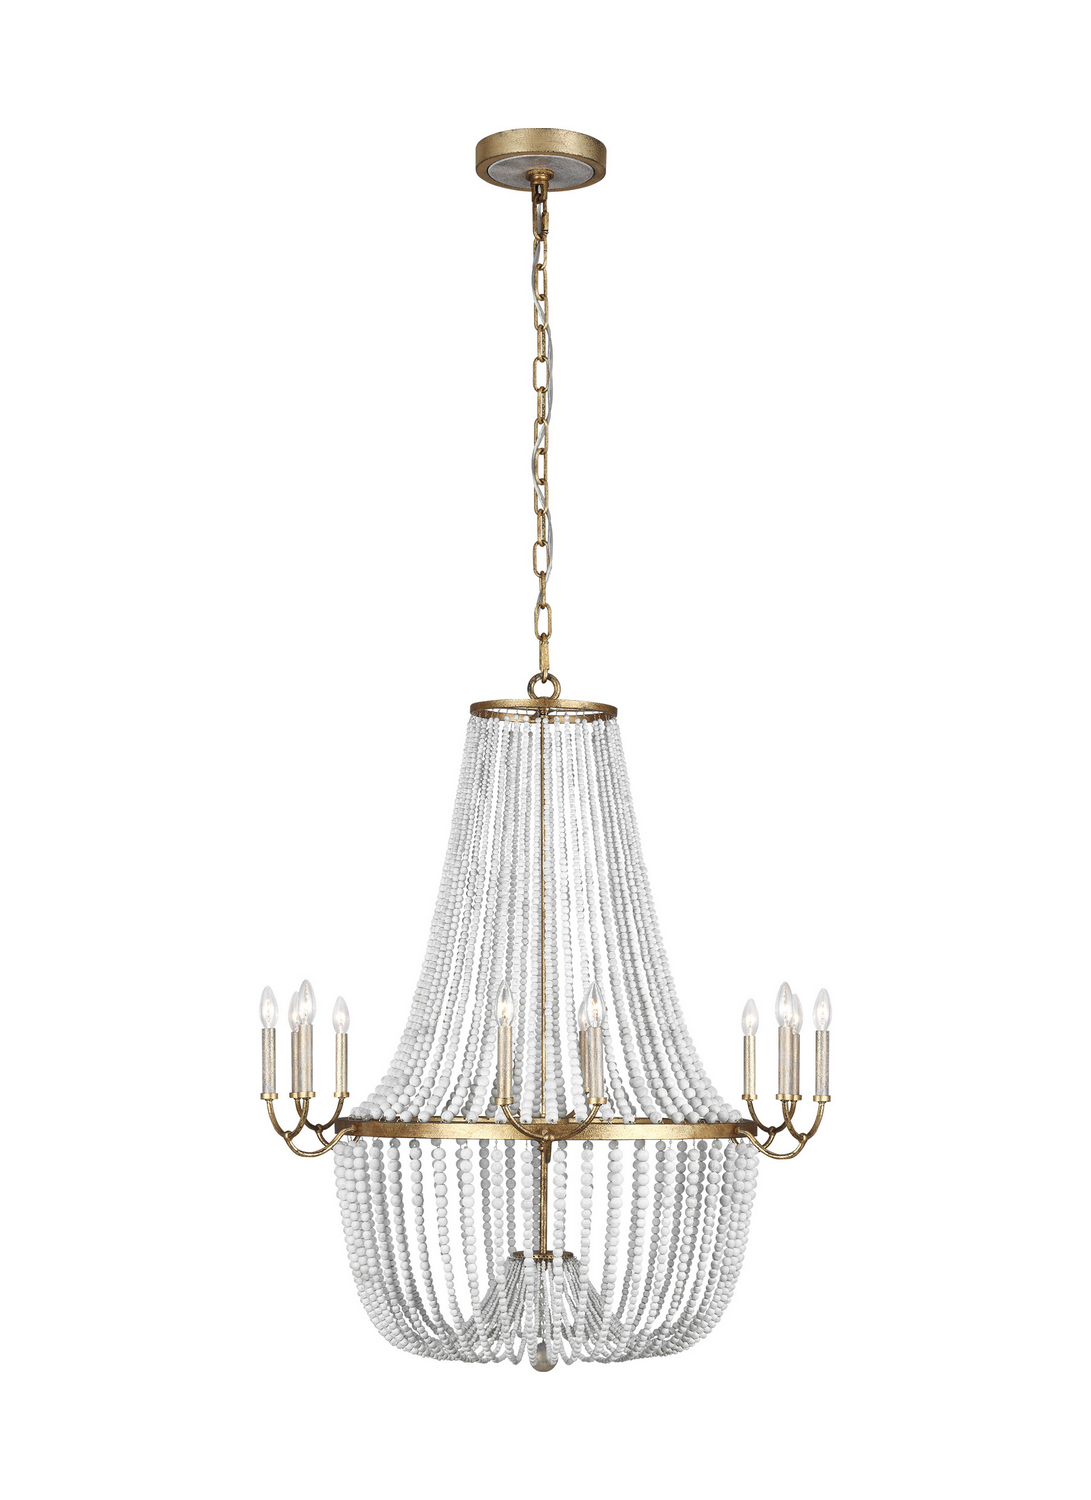 12 Light Chandelier from the Marielle collection by Feiss F328112ADB